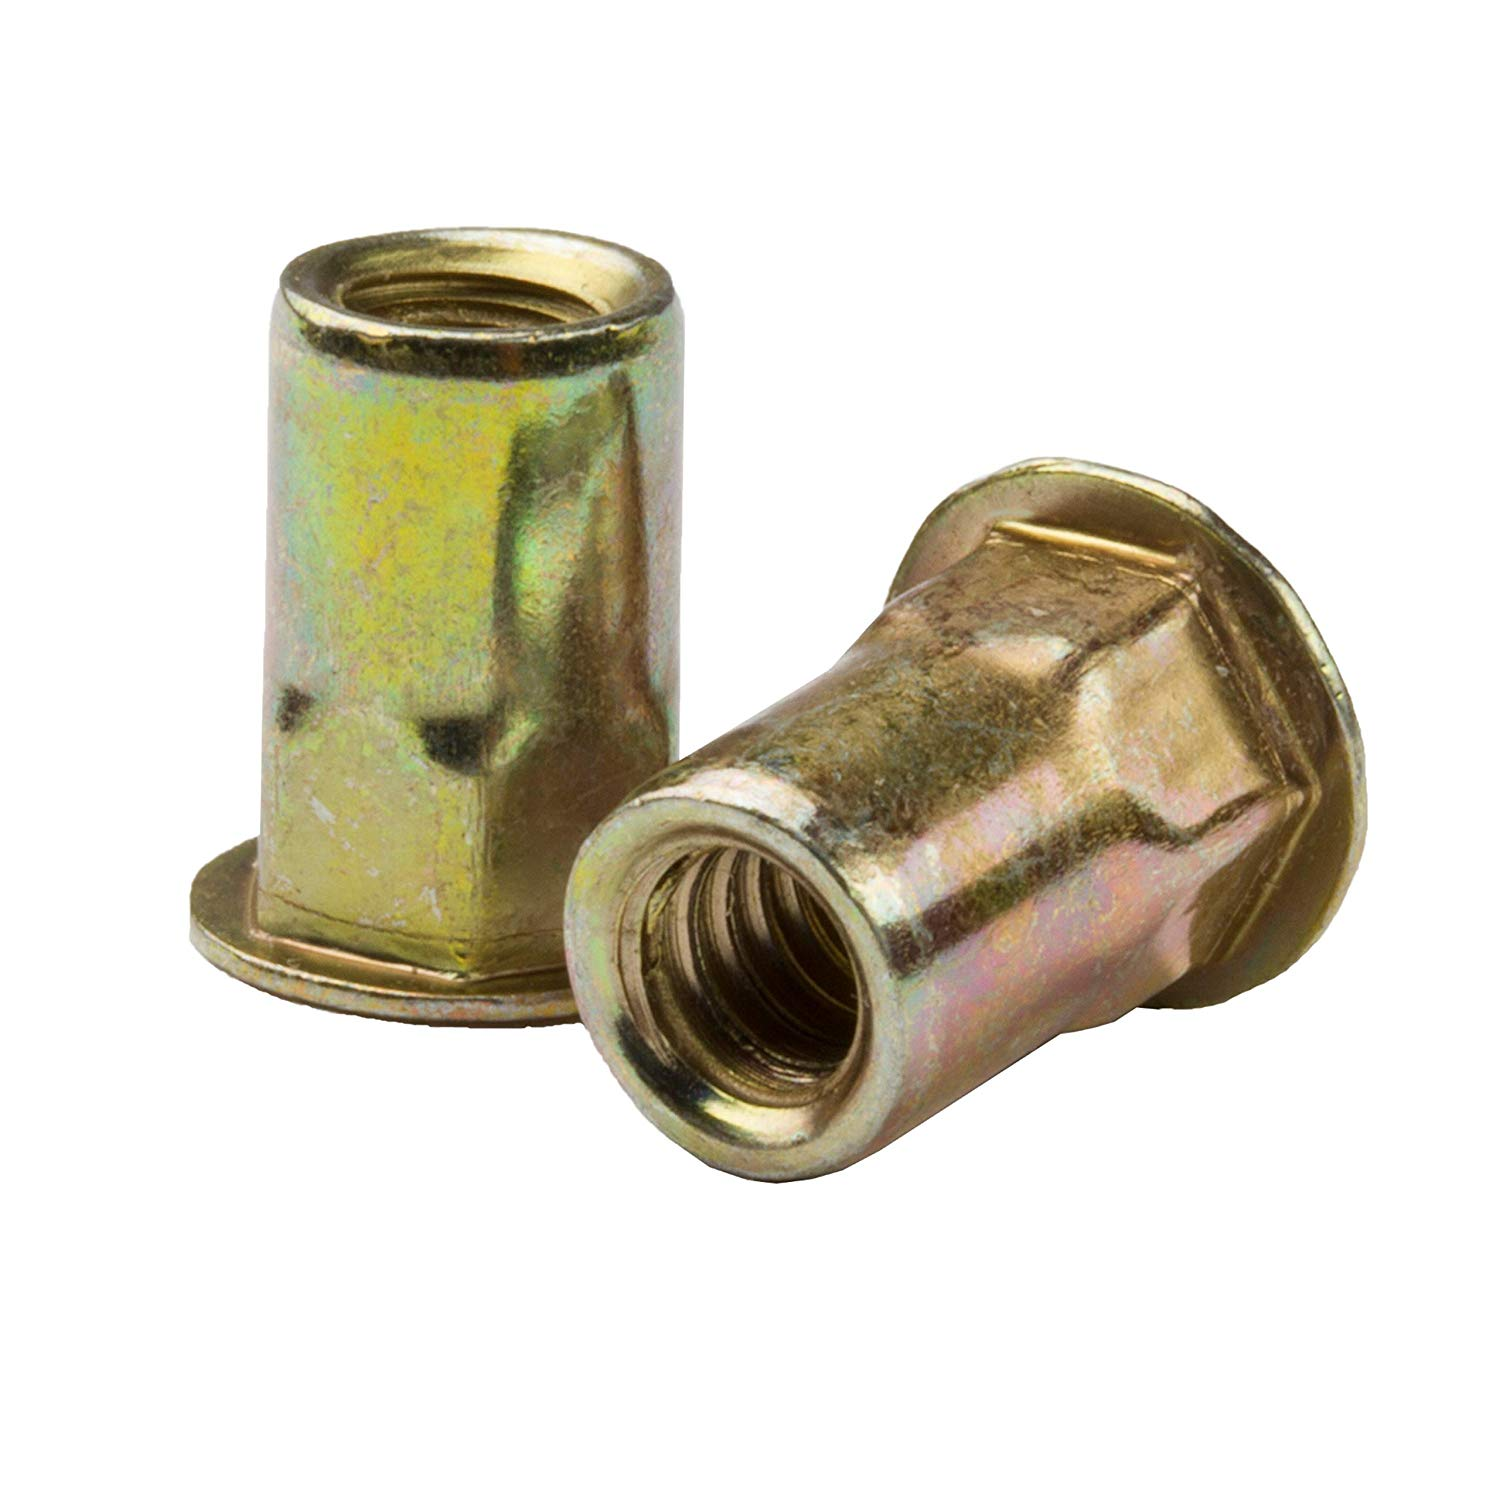 AEHS8-8125-3.8, RIVETNUT, M8x1.25 (0.70-3.81mm GR) Semi-Hex Body, Low PRO HD, Steel, Zinc YLW (100 PK)